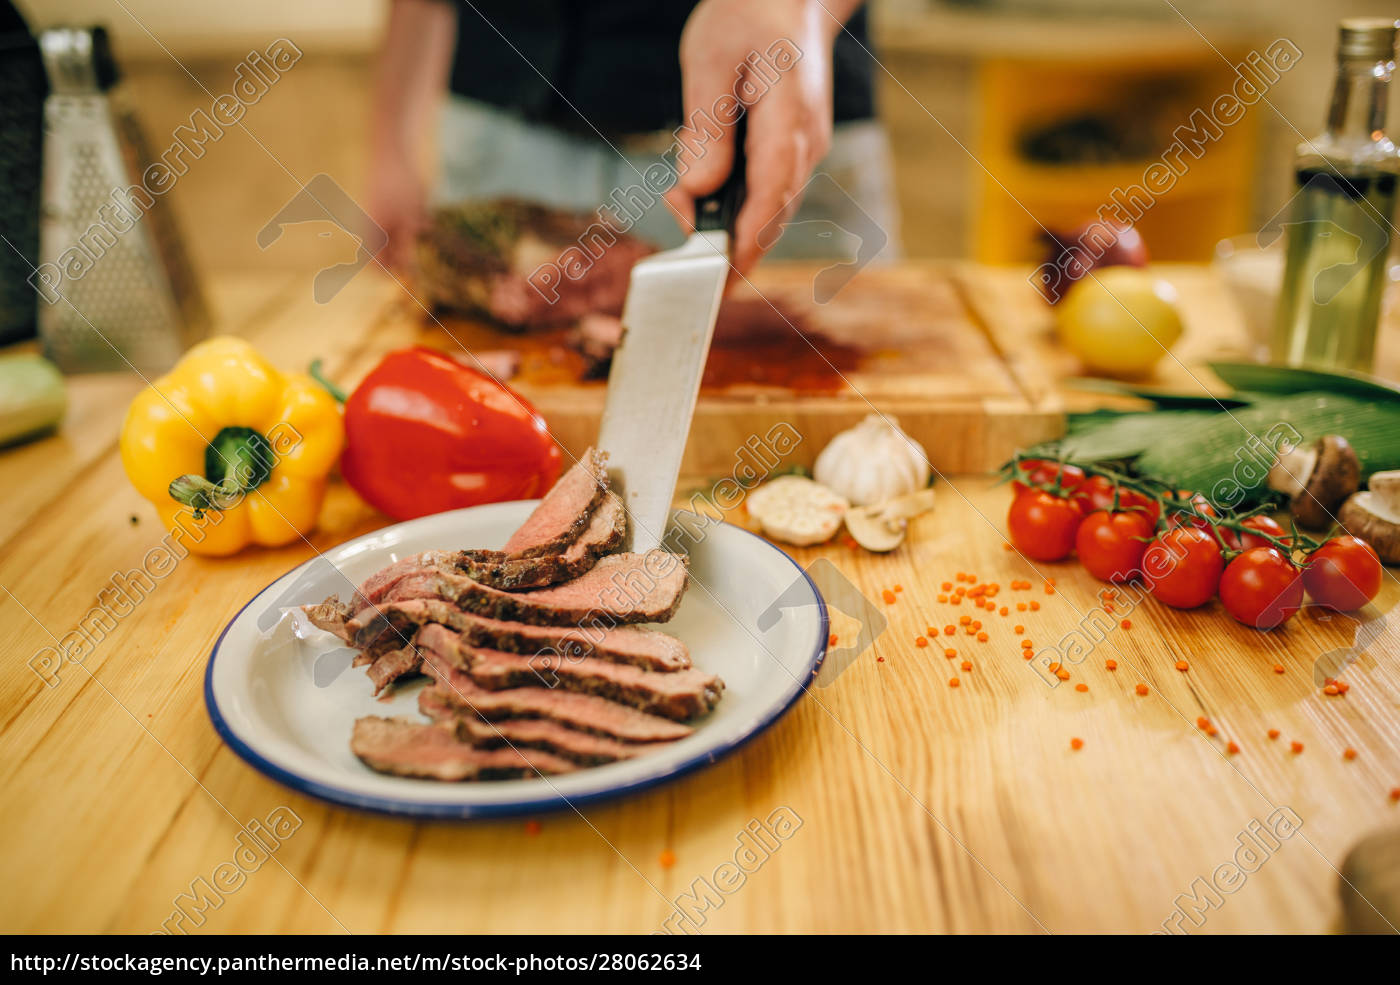 chef, with, knife, puts, roasted, meat - 28062634